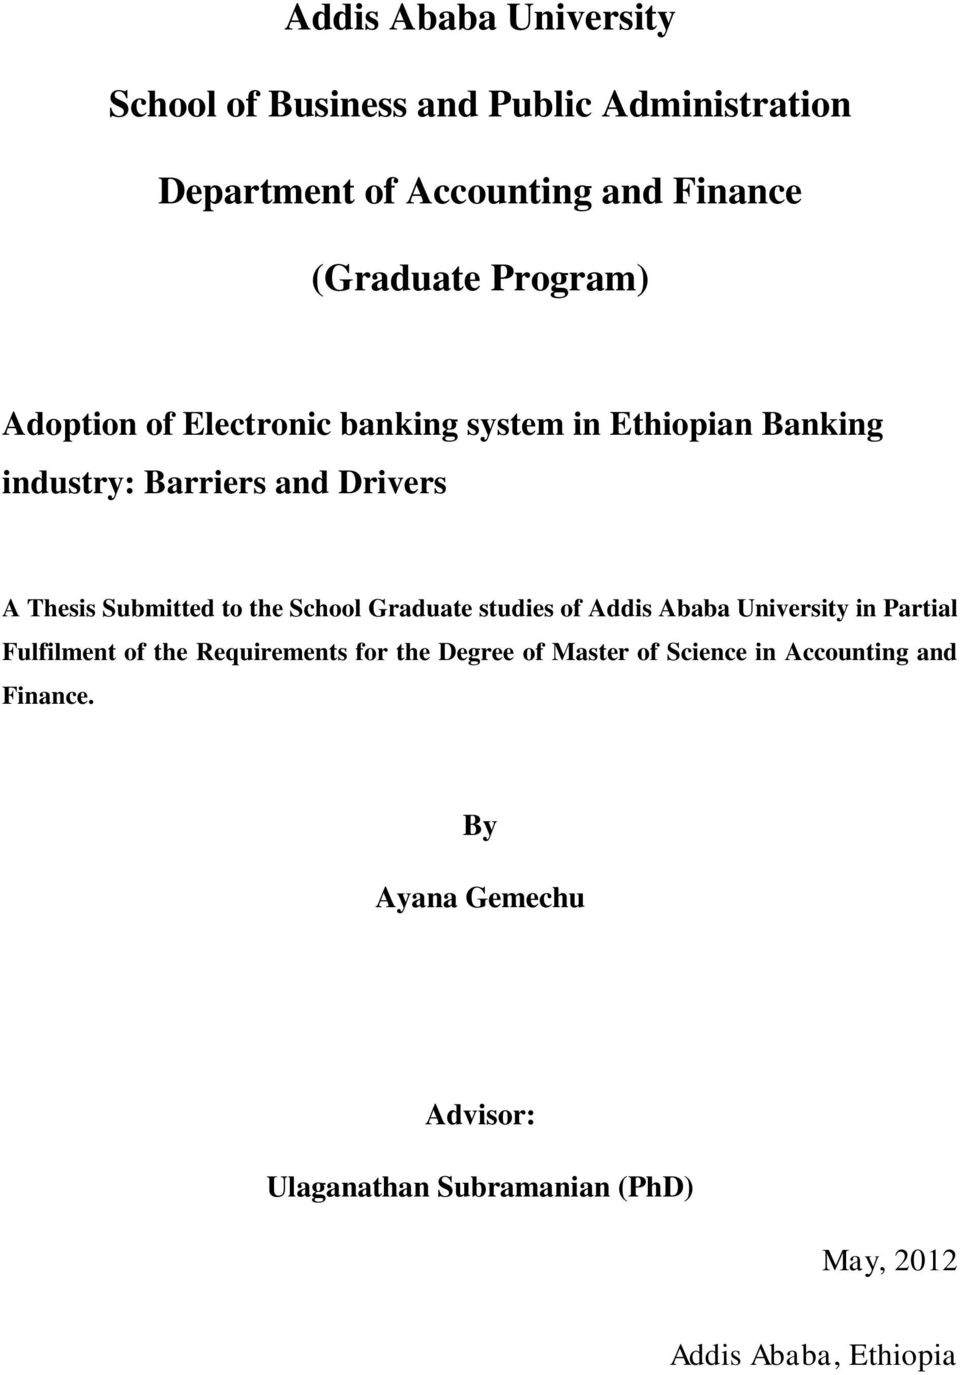 Research thesis of housing addis ababa university